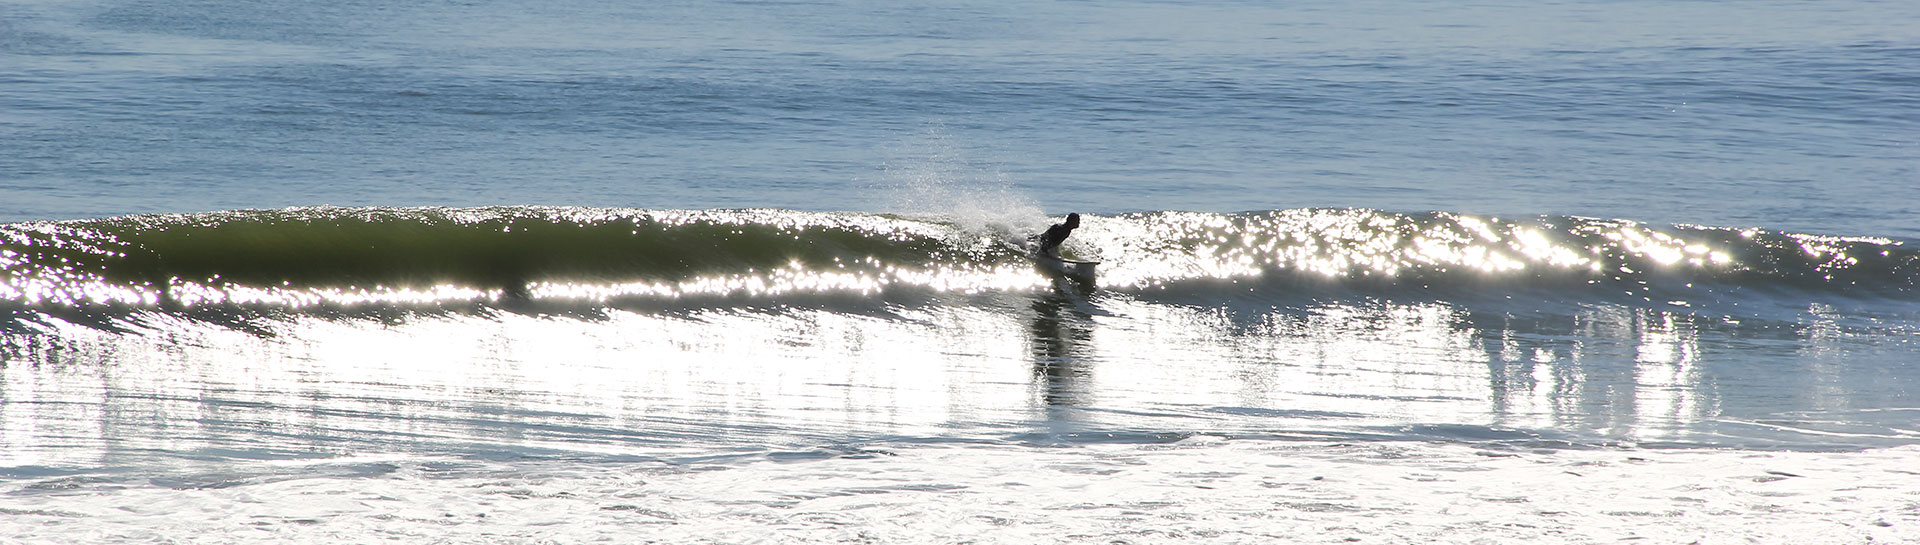 Surfer Riding a wave in OC